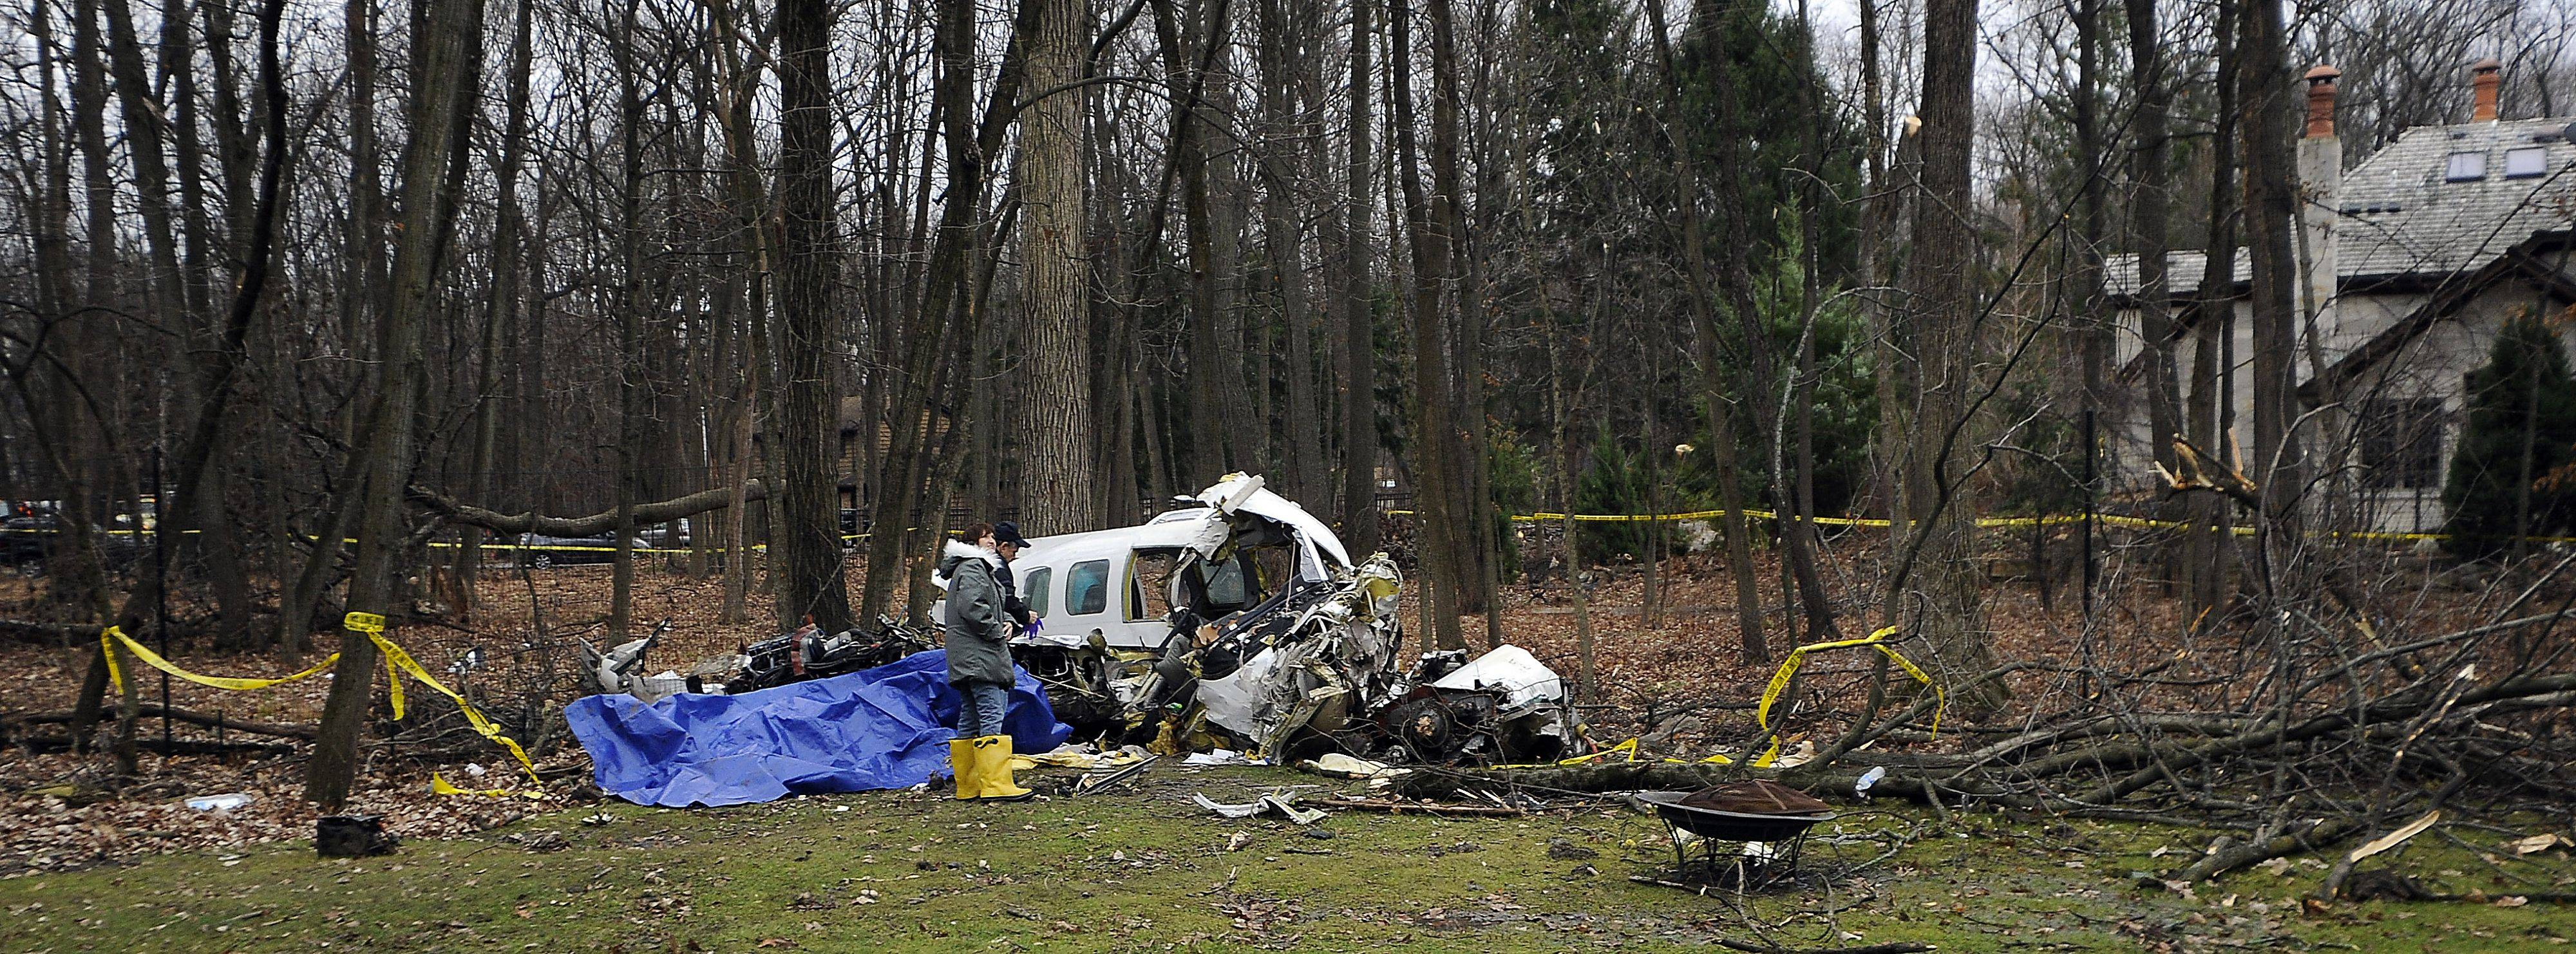 The scene Tuesday morning of the Riverwoods plane crash which killed three people Monday night near Portwine Rd.